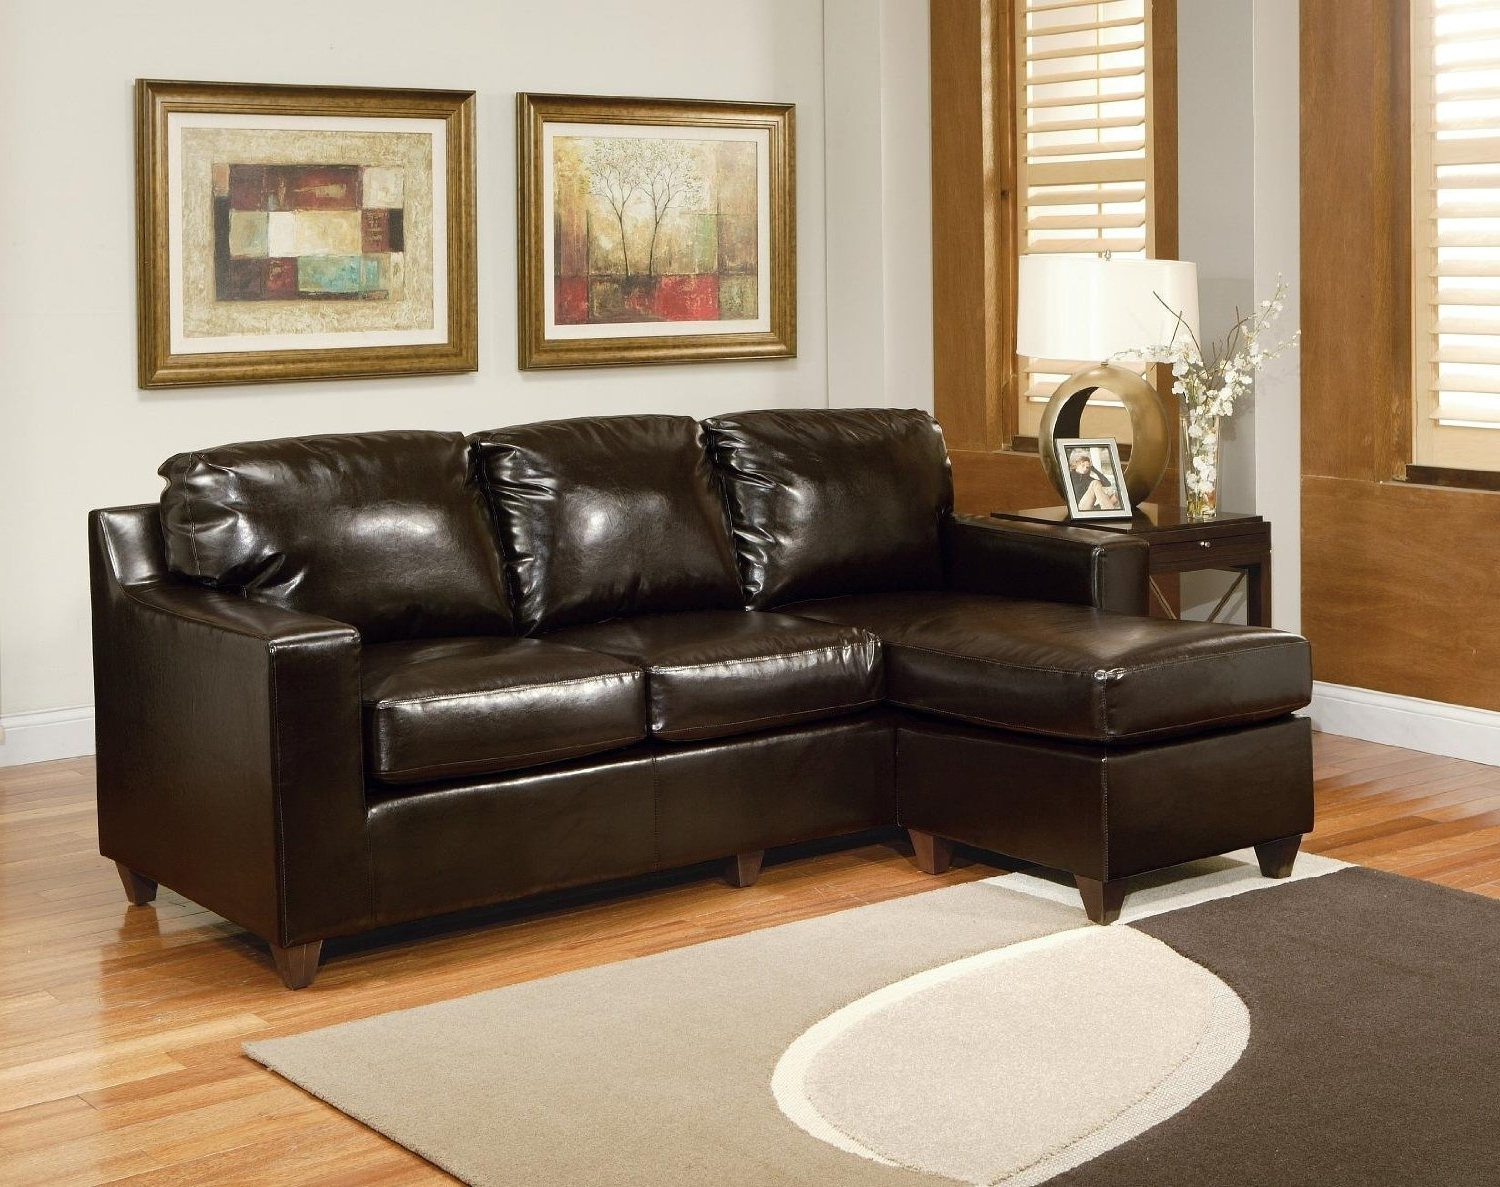 2019 Sectional Sofa For Small Spaces (View 14 of 20)